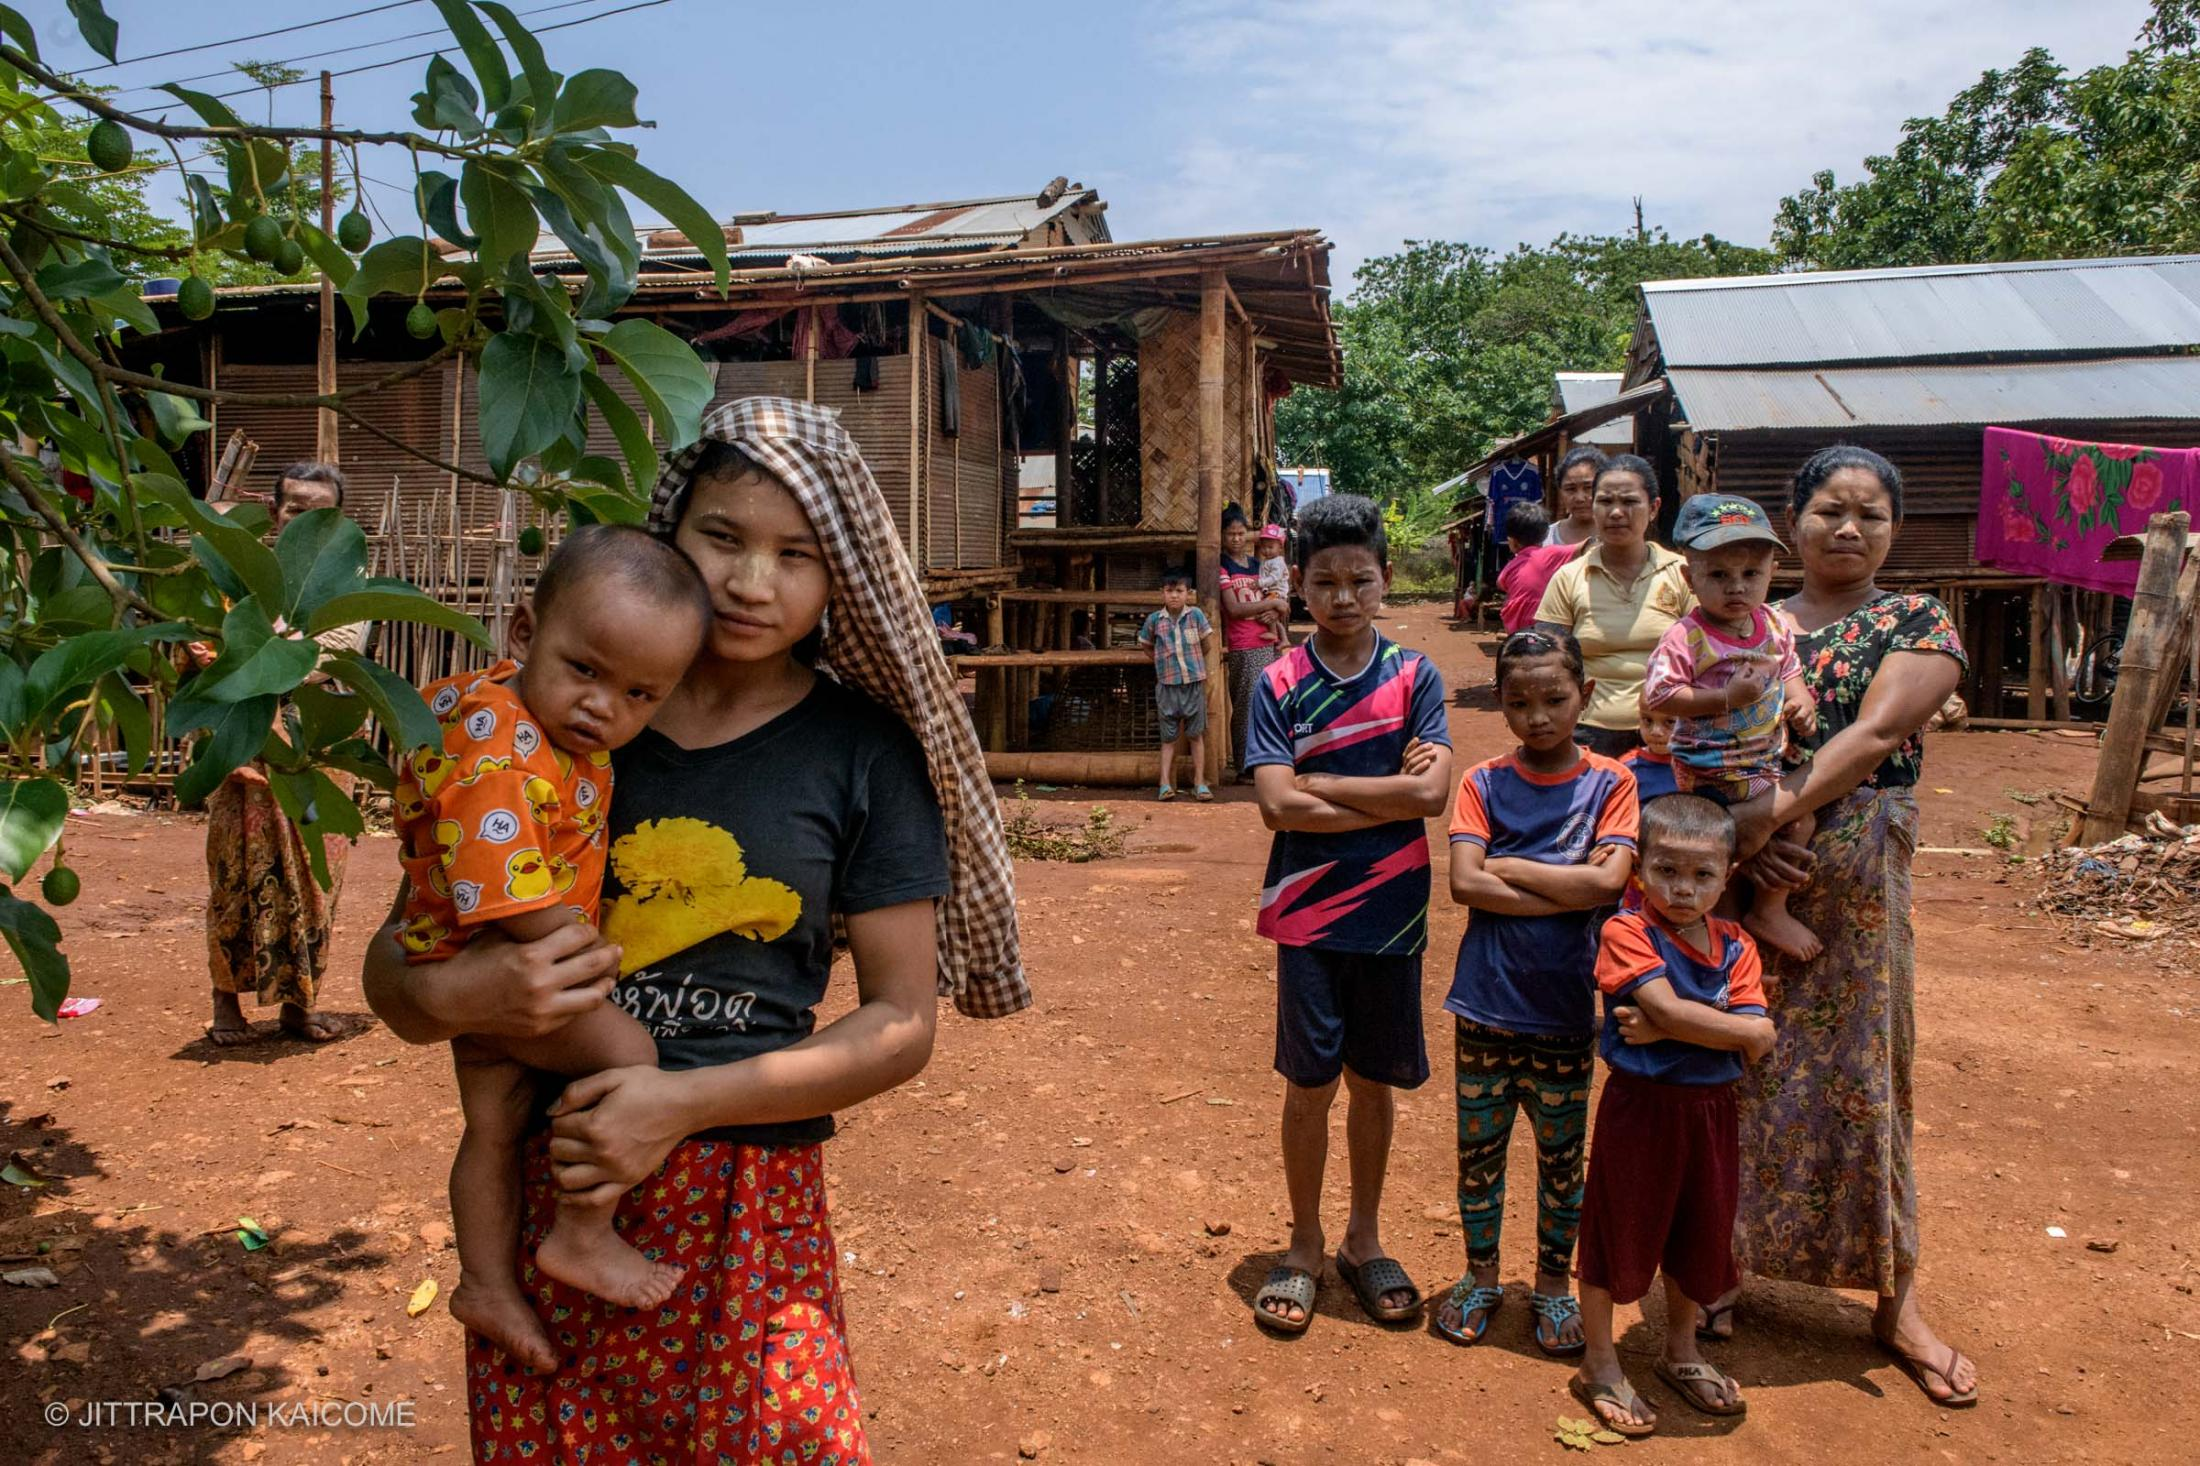 Myanmar migrants at the Village 44, on the Thai-Myanmar border, lost their jobs and cannot farm resulted from the lockdown against Coivd-19. People are waiting in line to receive food handouts in Phop Phra, Tak, Thailand in May 2020.